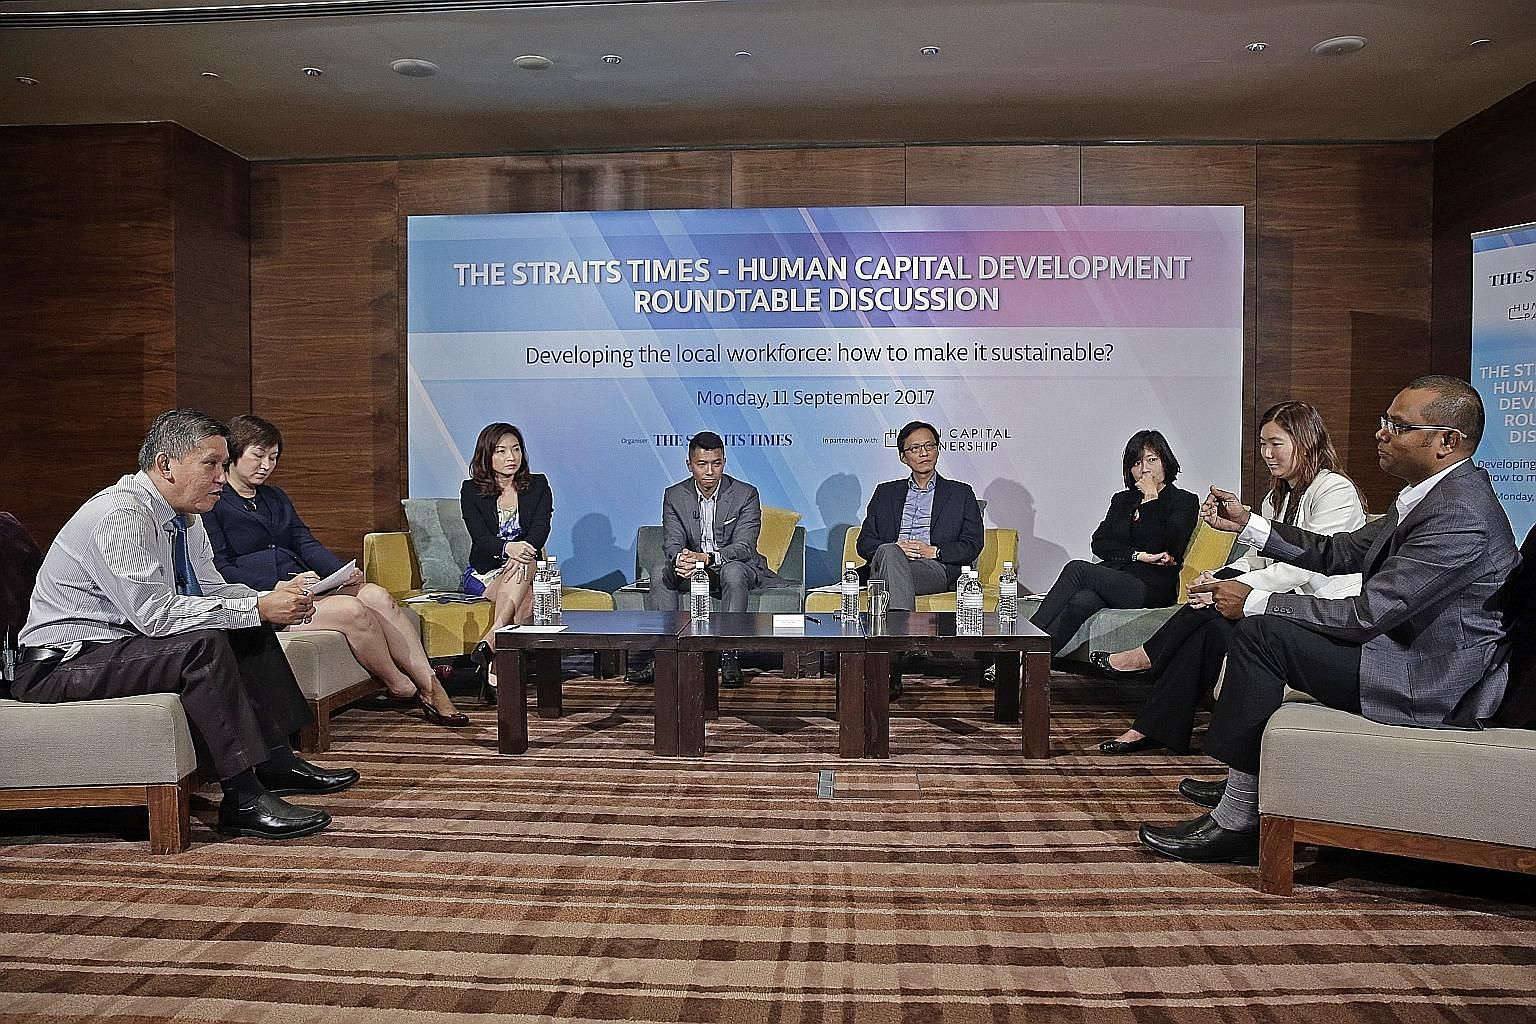 (From left) ST manpower correspondent Toh Yong Chuan with panellists Selena Huynh, deputy CEO of the Institute for Human Resource Professionals; Merle Chen, chief talent officer of The Lo & Behold Group; Kenneth Wong, director of Workforce Singapore'